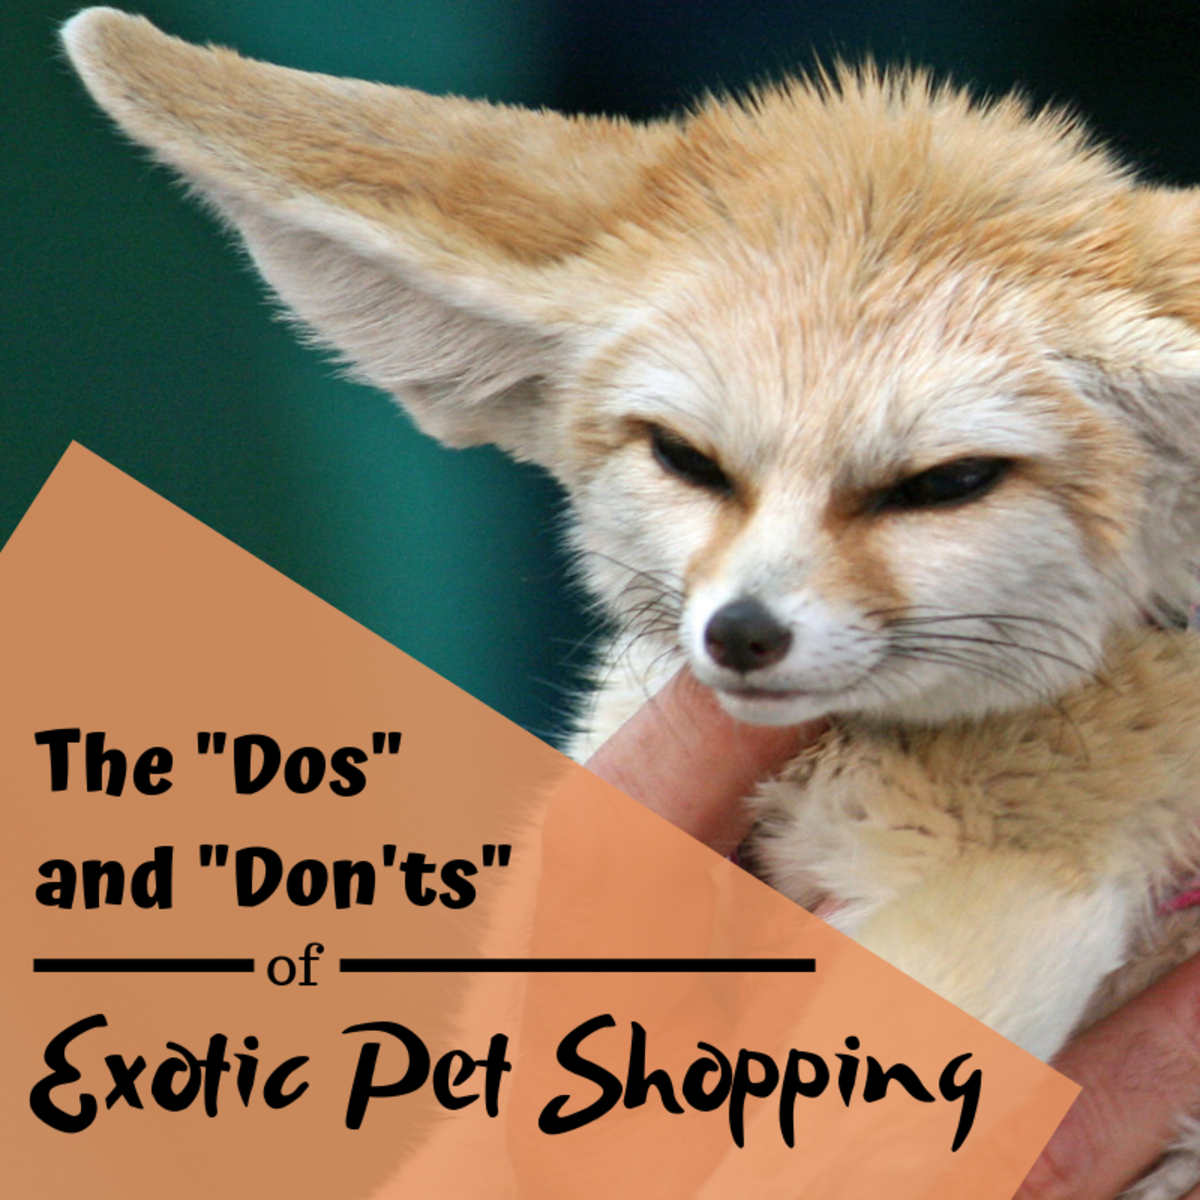 Exotic Animals for Sale: The Dos and Don'ts of Purchasing Pets Online